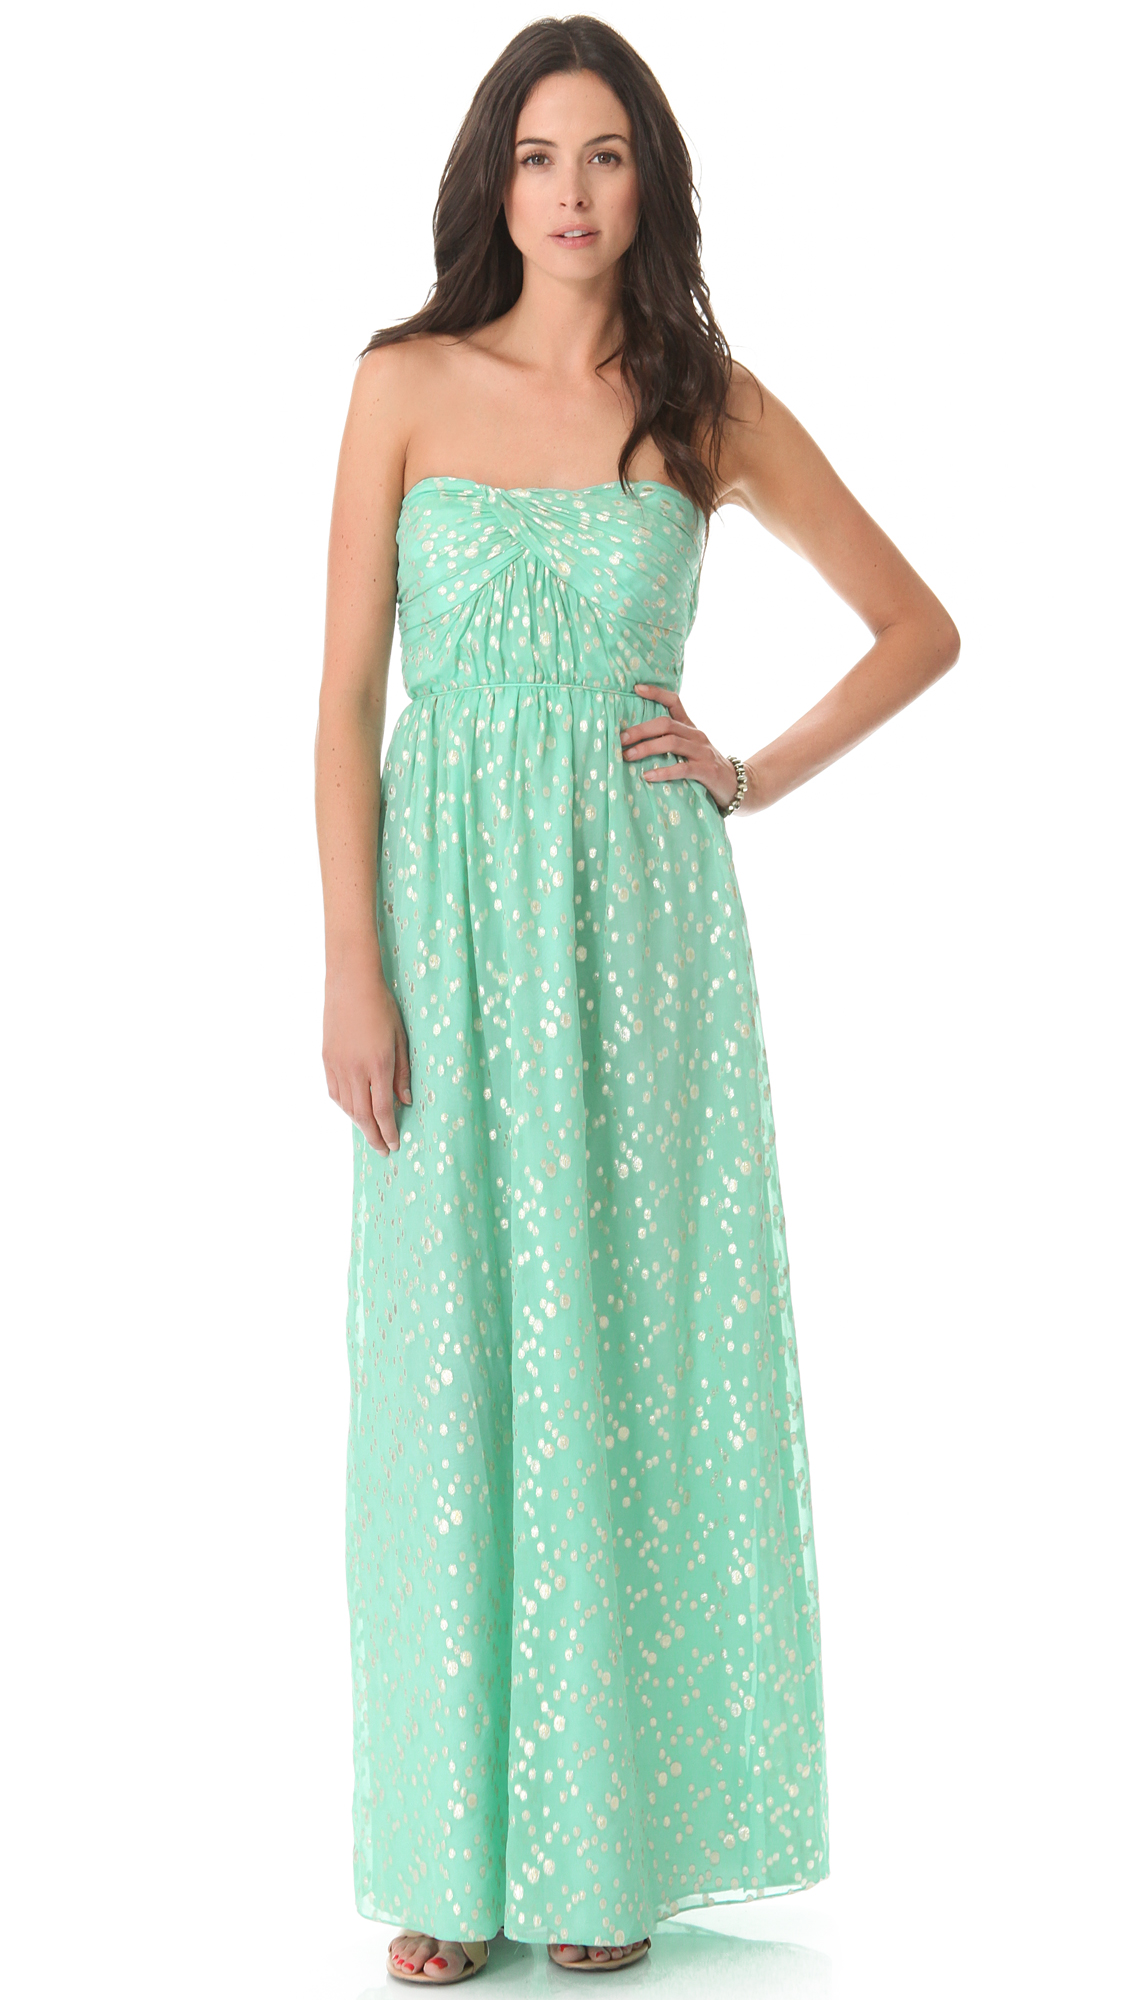 Lyst - Shoshanna Jennifer Strapless Maxi Dress in Green